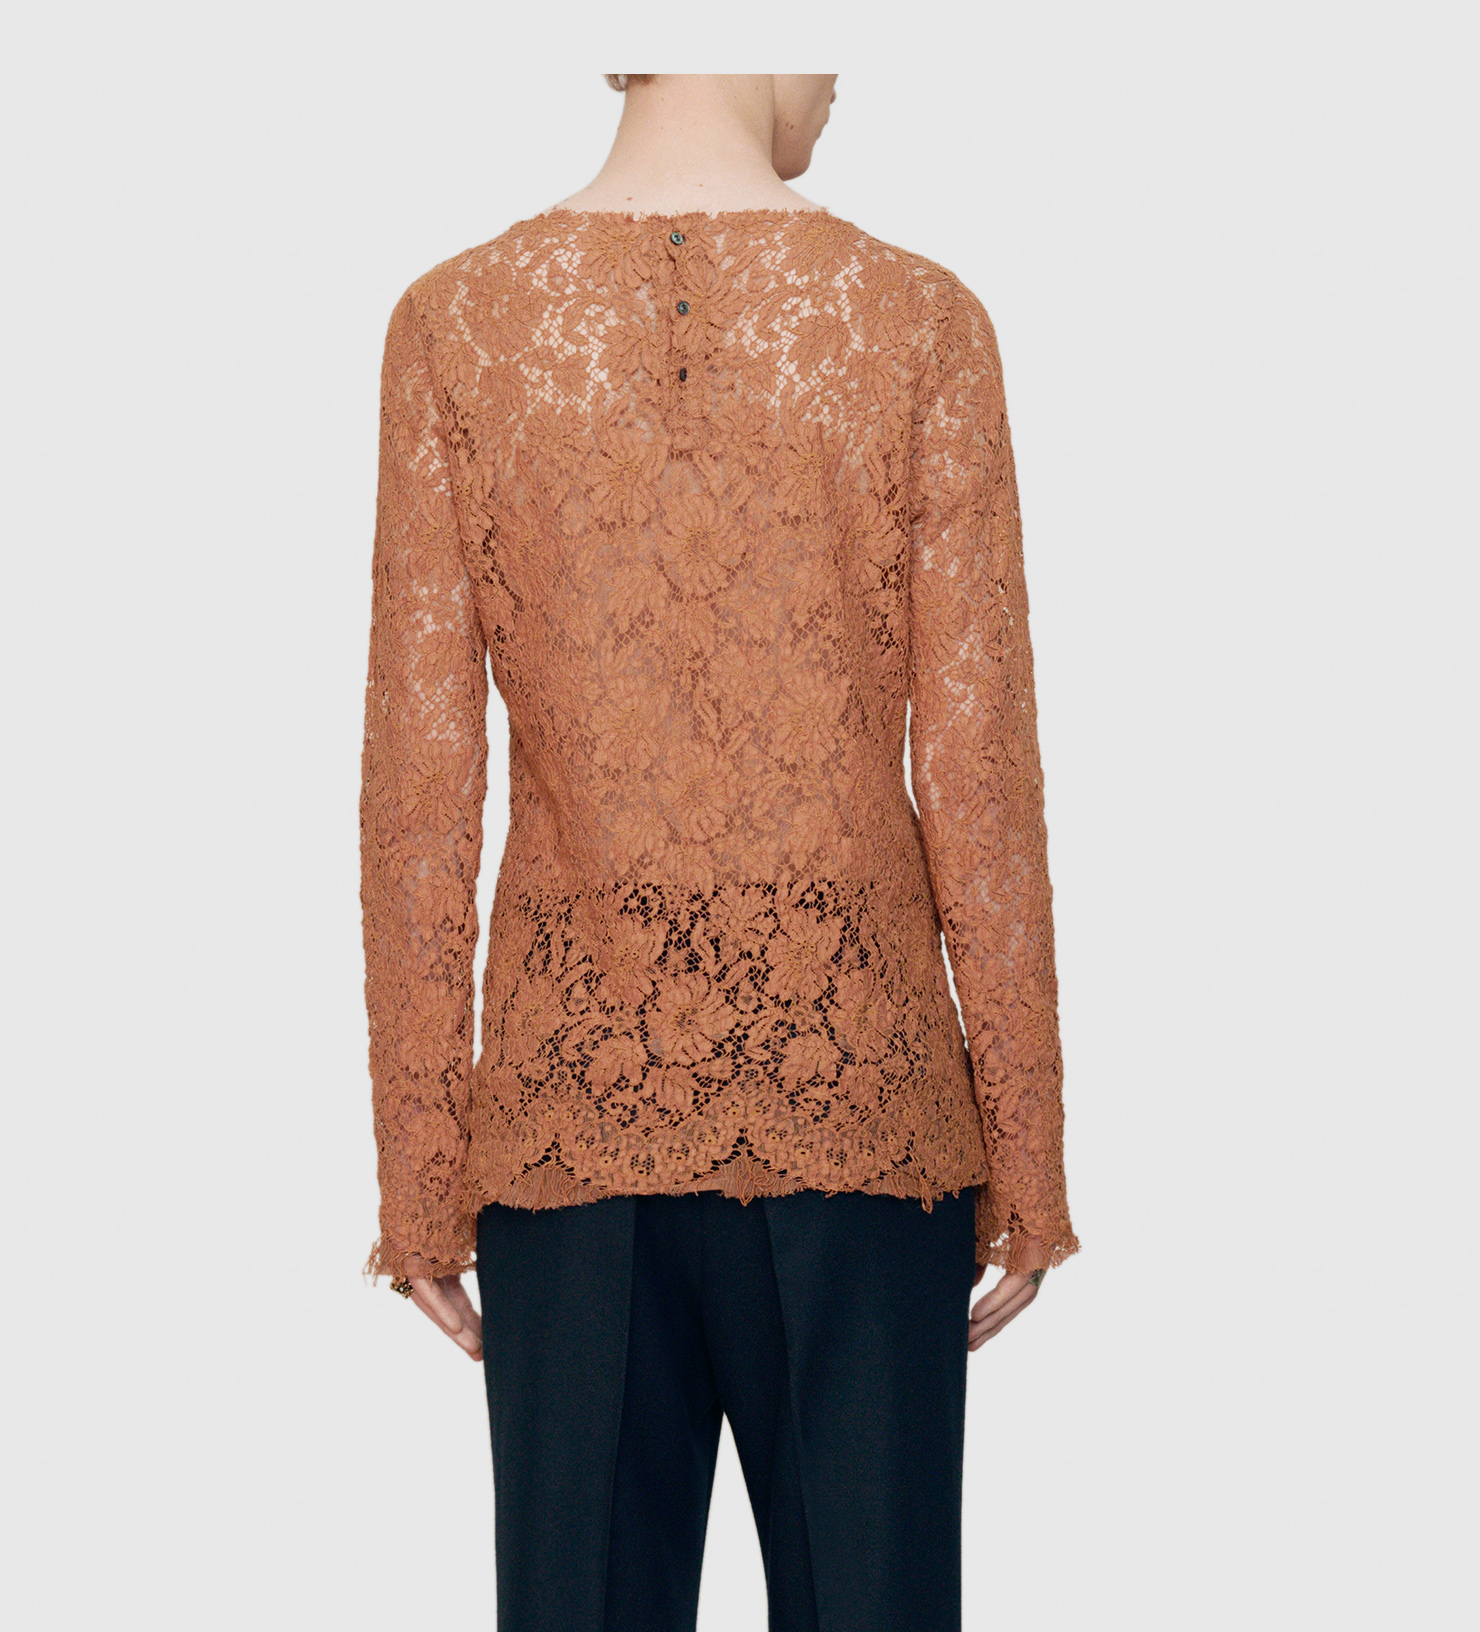 26d67eebf1 Lyst - Gucci Cotton Lace Shirt in Brown for Men